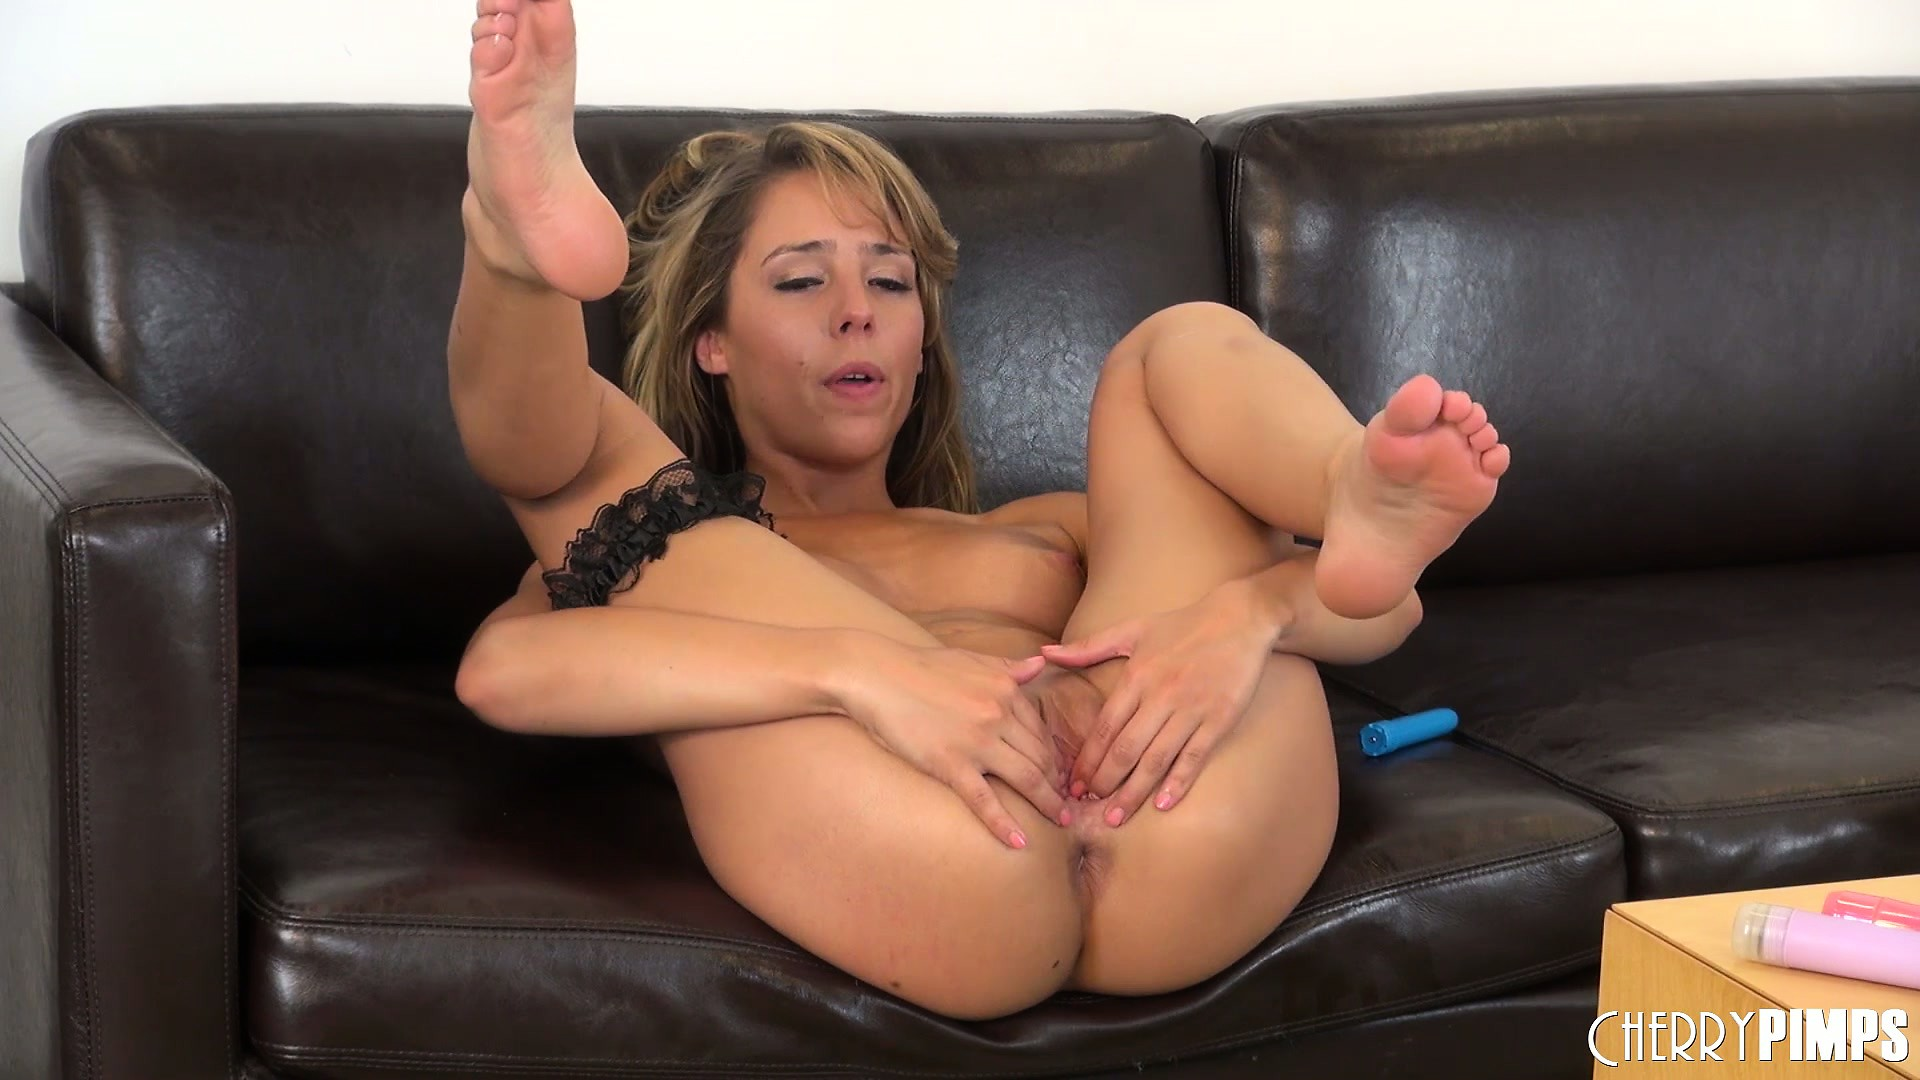 Porn Tube of The Wild Blonde Inserts The Sex Toy As Deep As She Can In Her Twat And Loves It